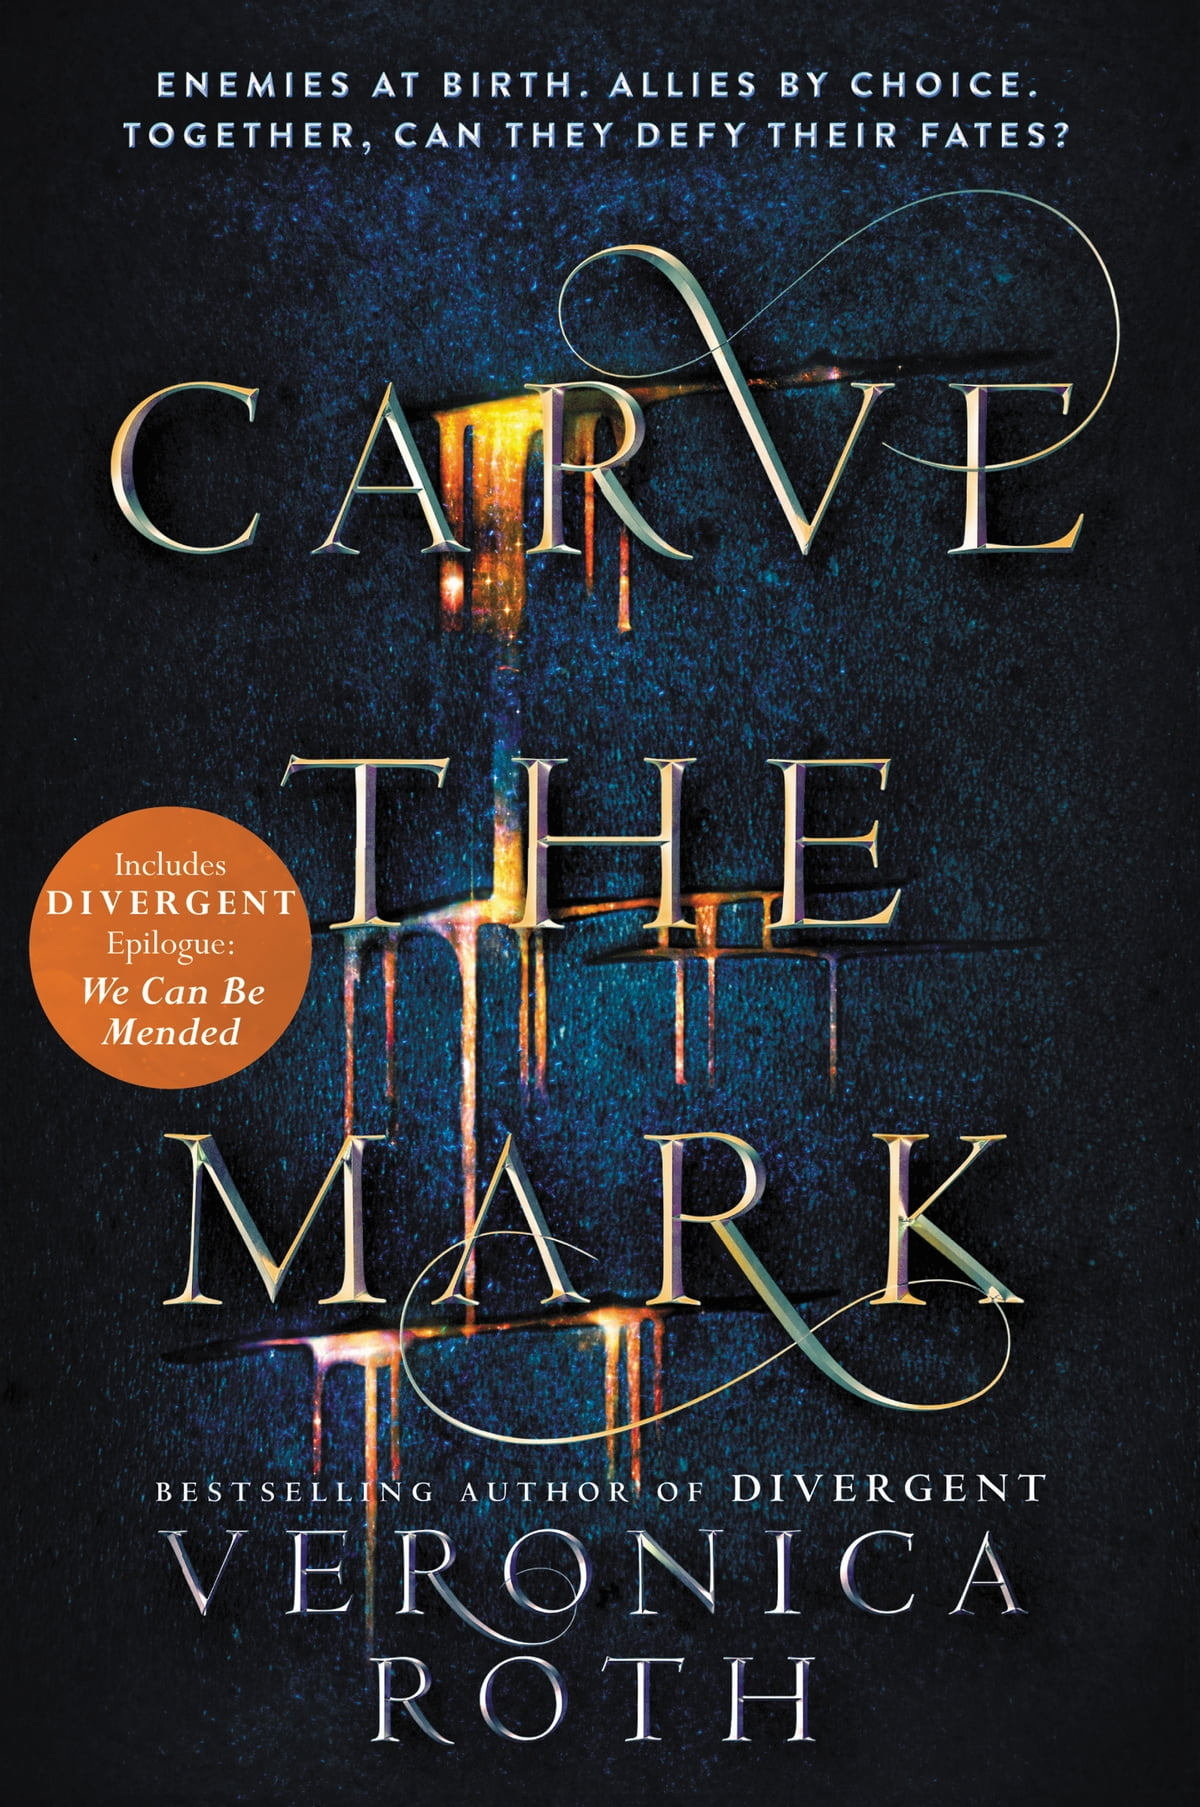 Carve the Mark eBook by Veronica Roth - 9780062348654 | Rakuten Kobo United  States